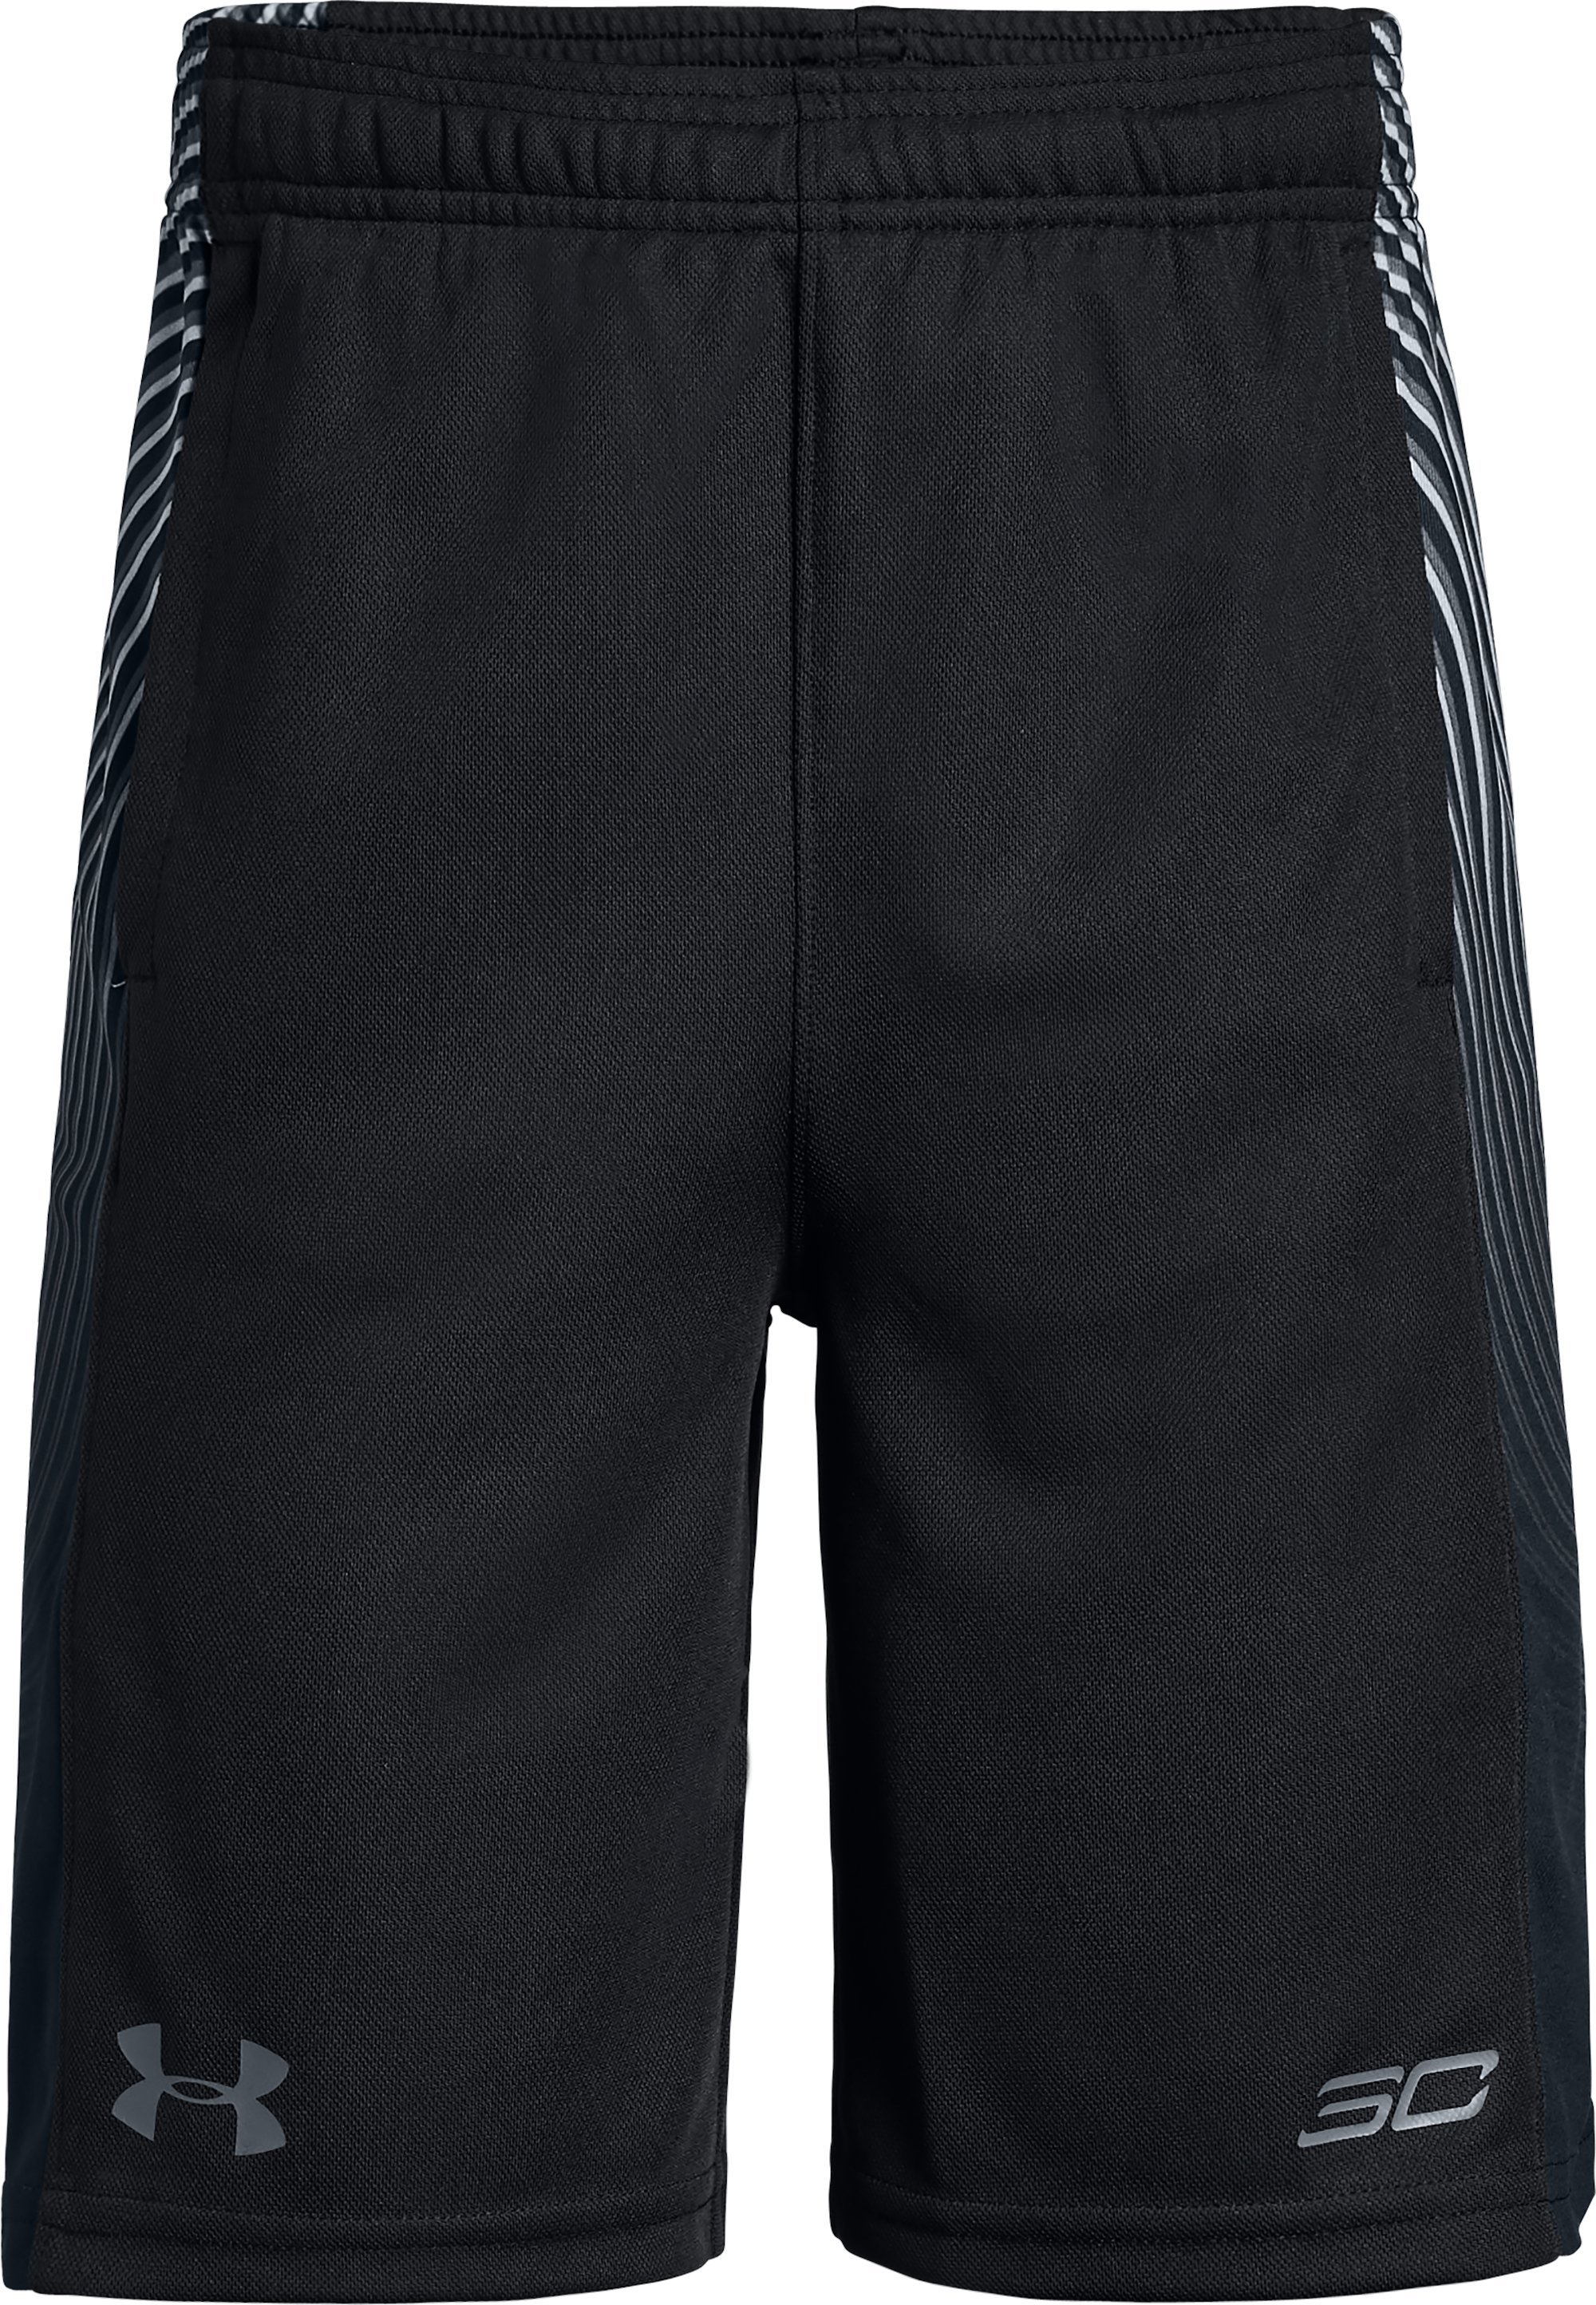 Boys' SC30 Waves Shorts, Black ,